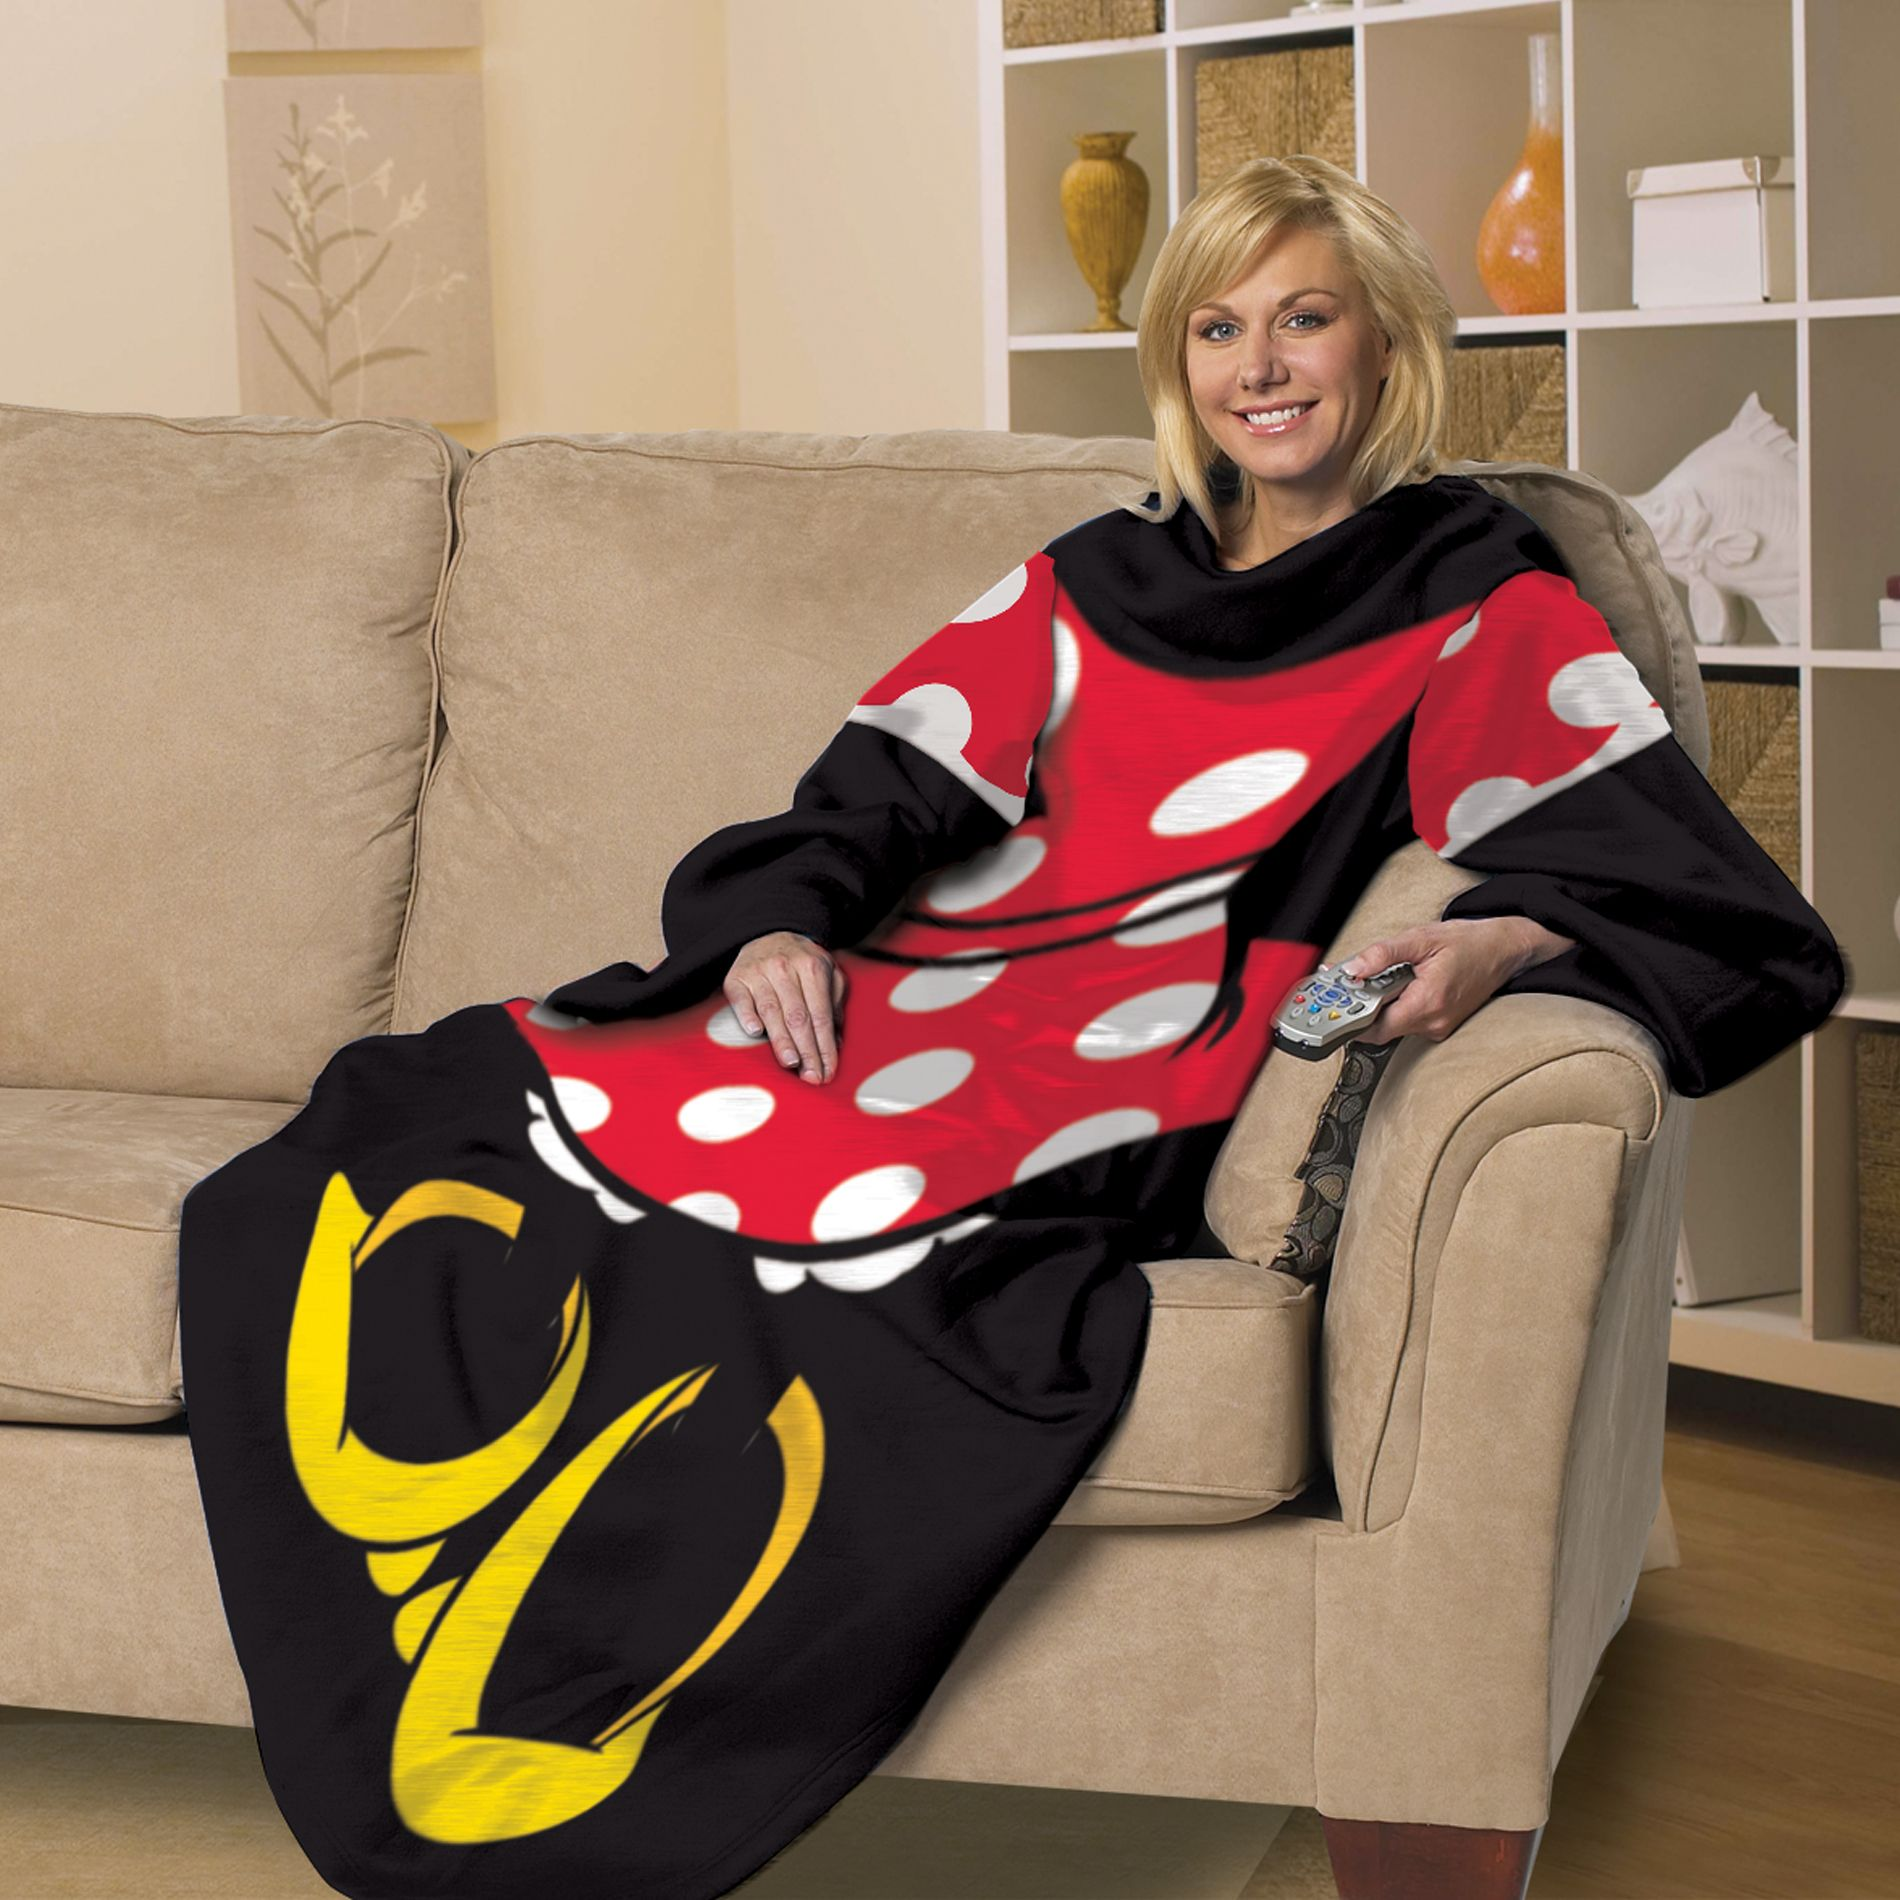 Licensed Adult comfy throws - Minnie Mouse